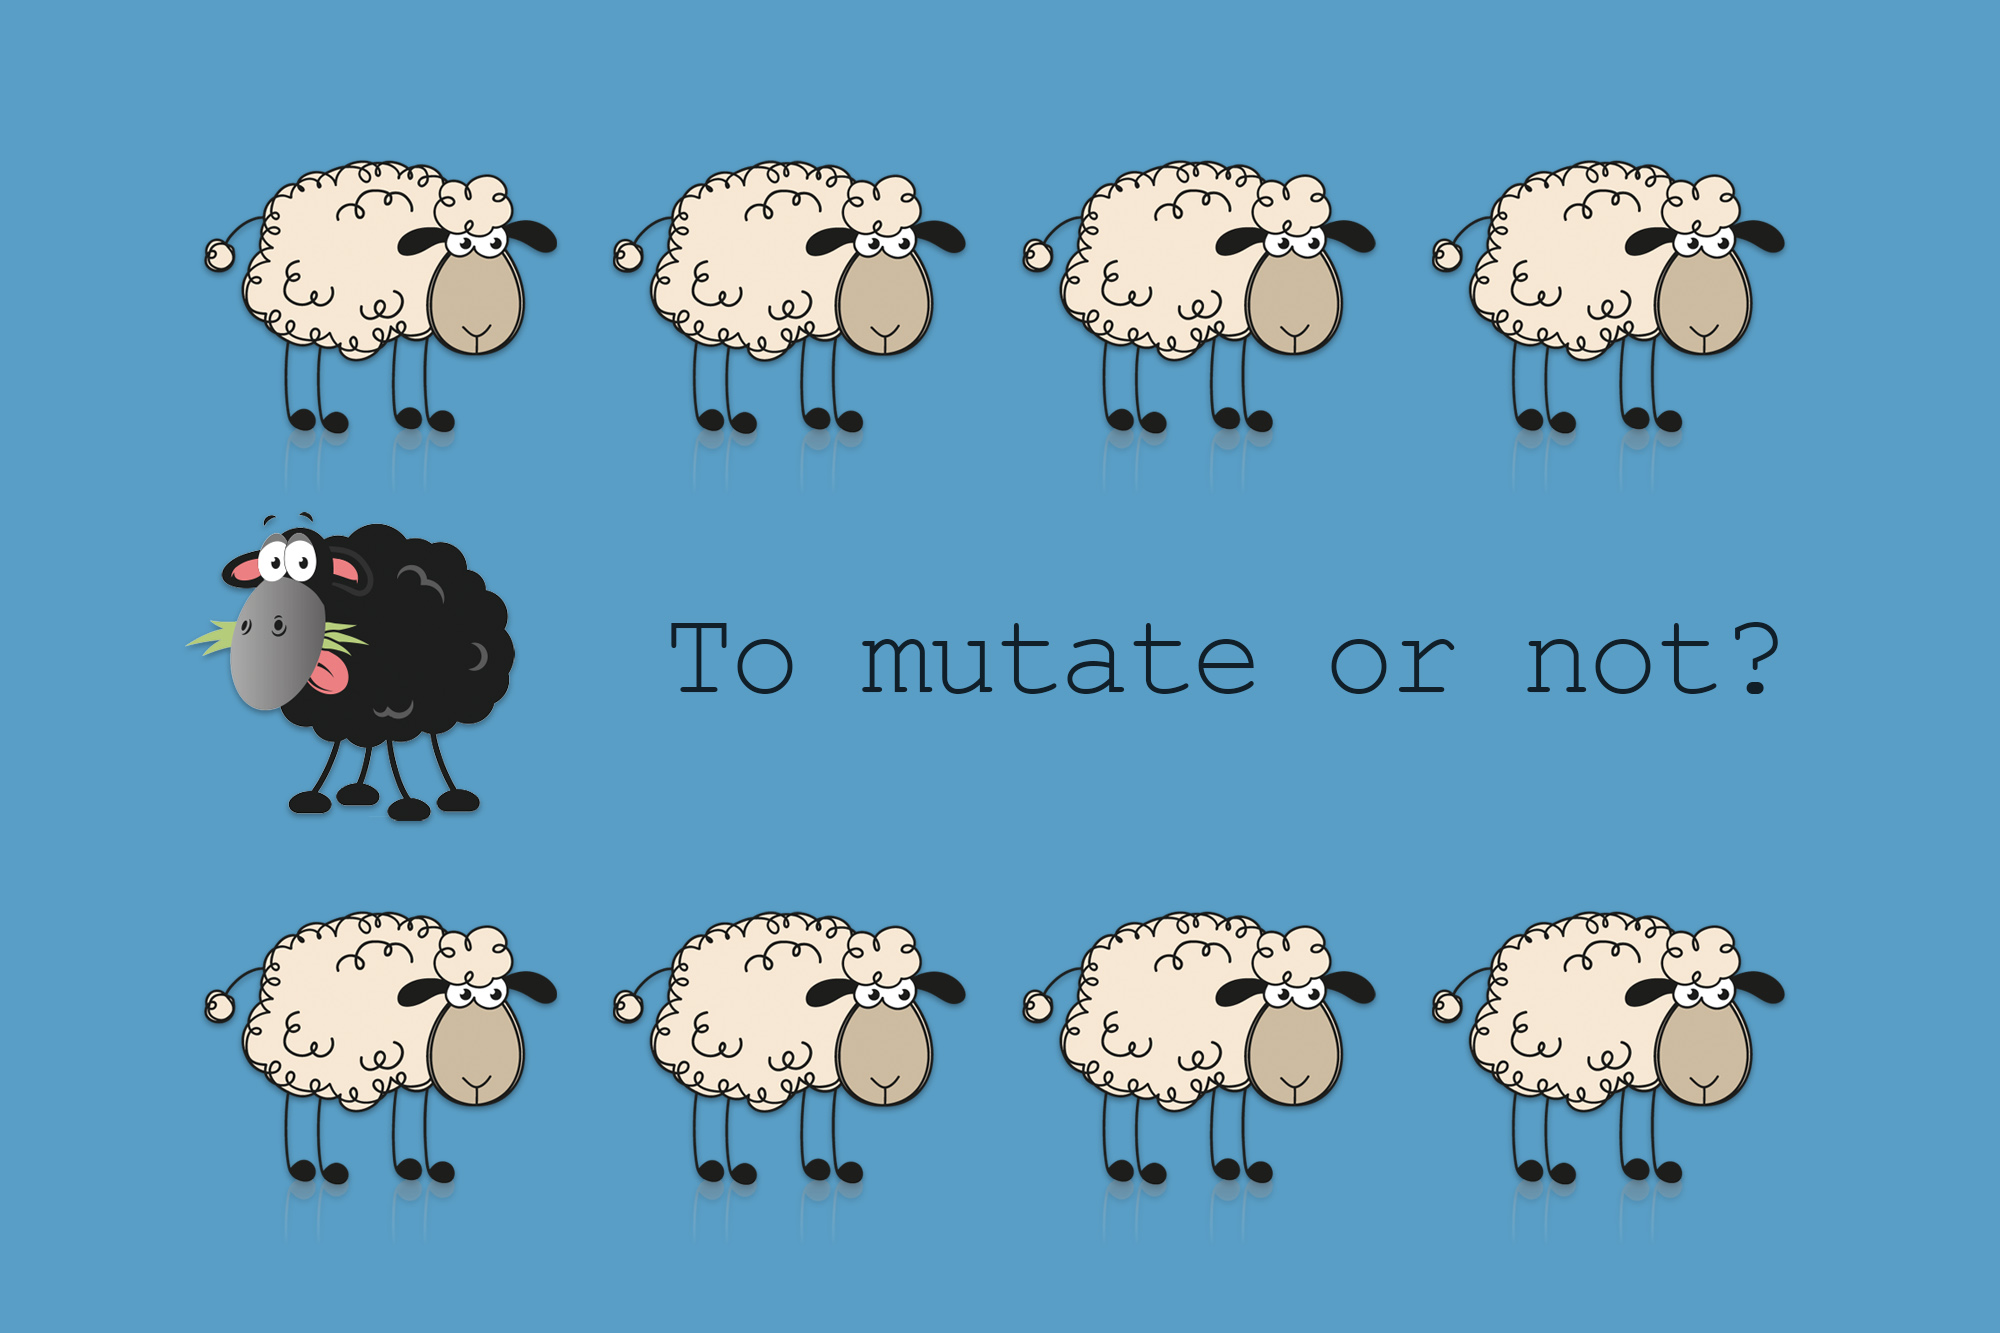 To mutate or not